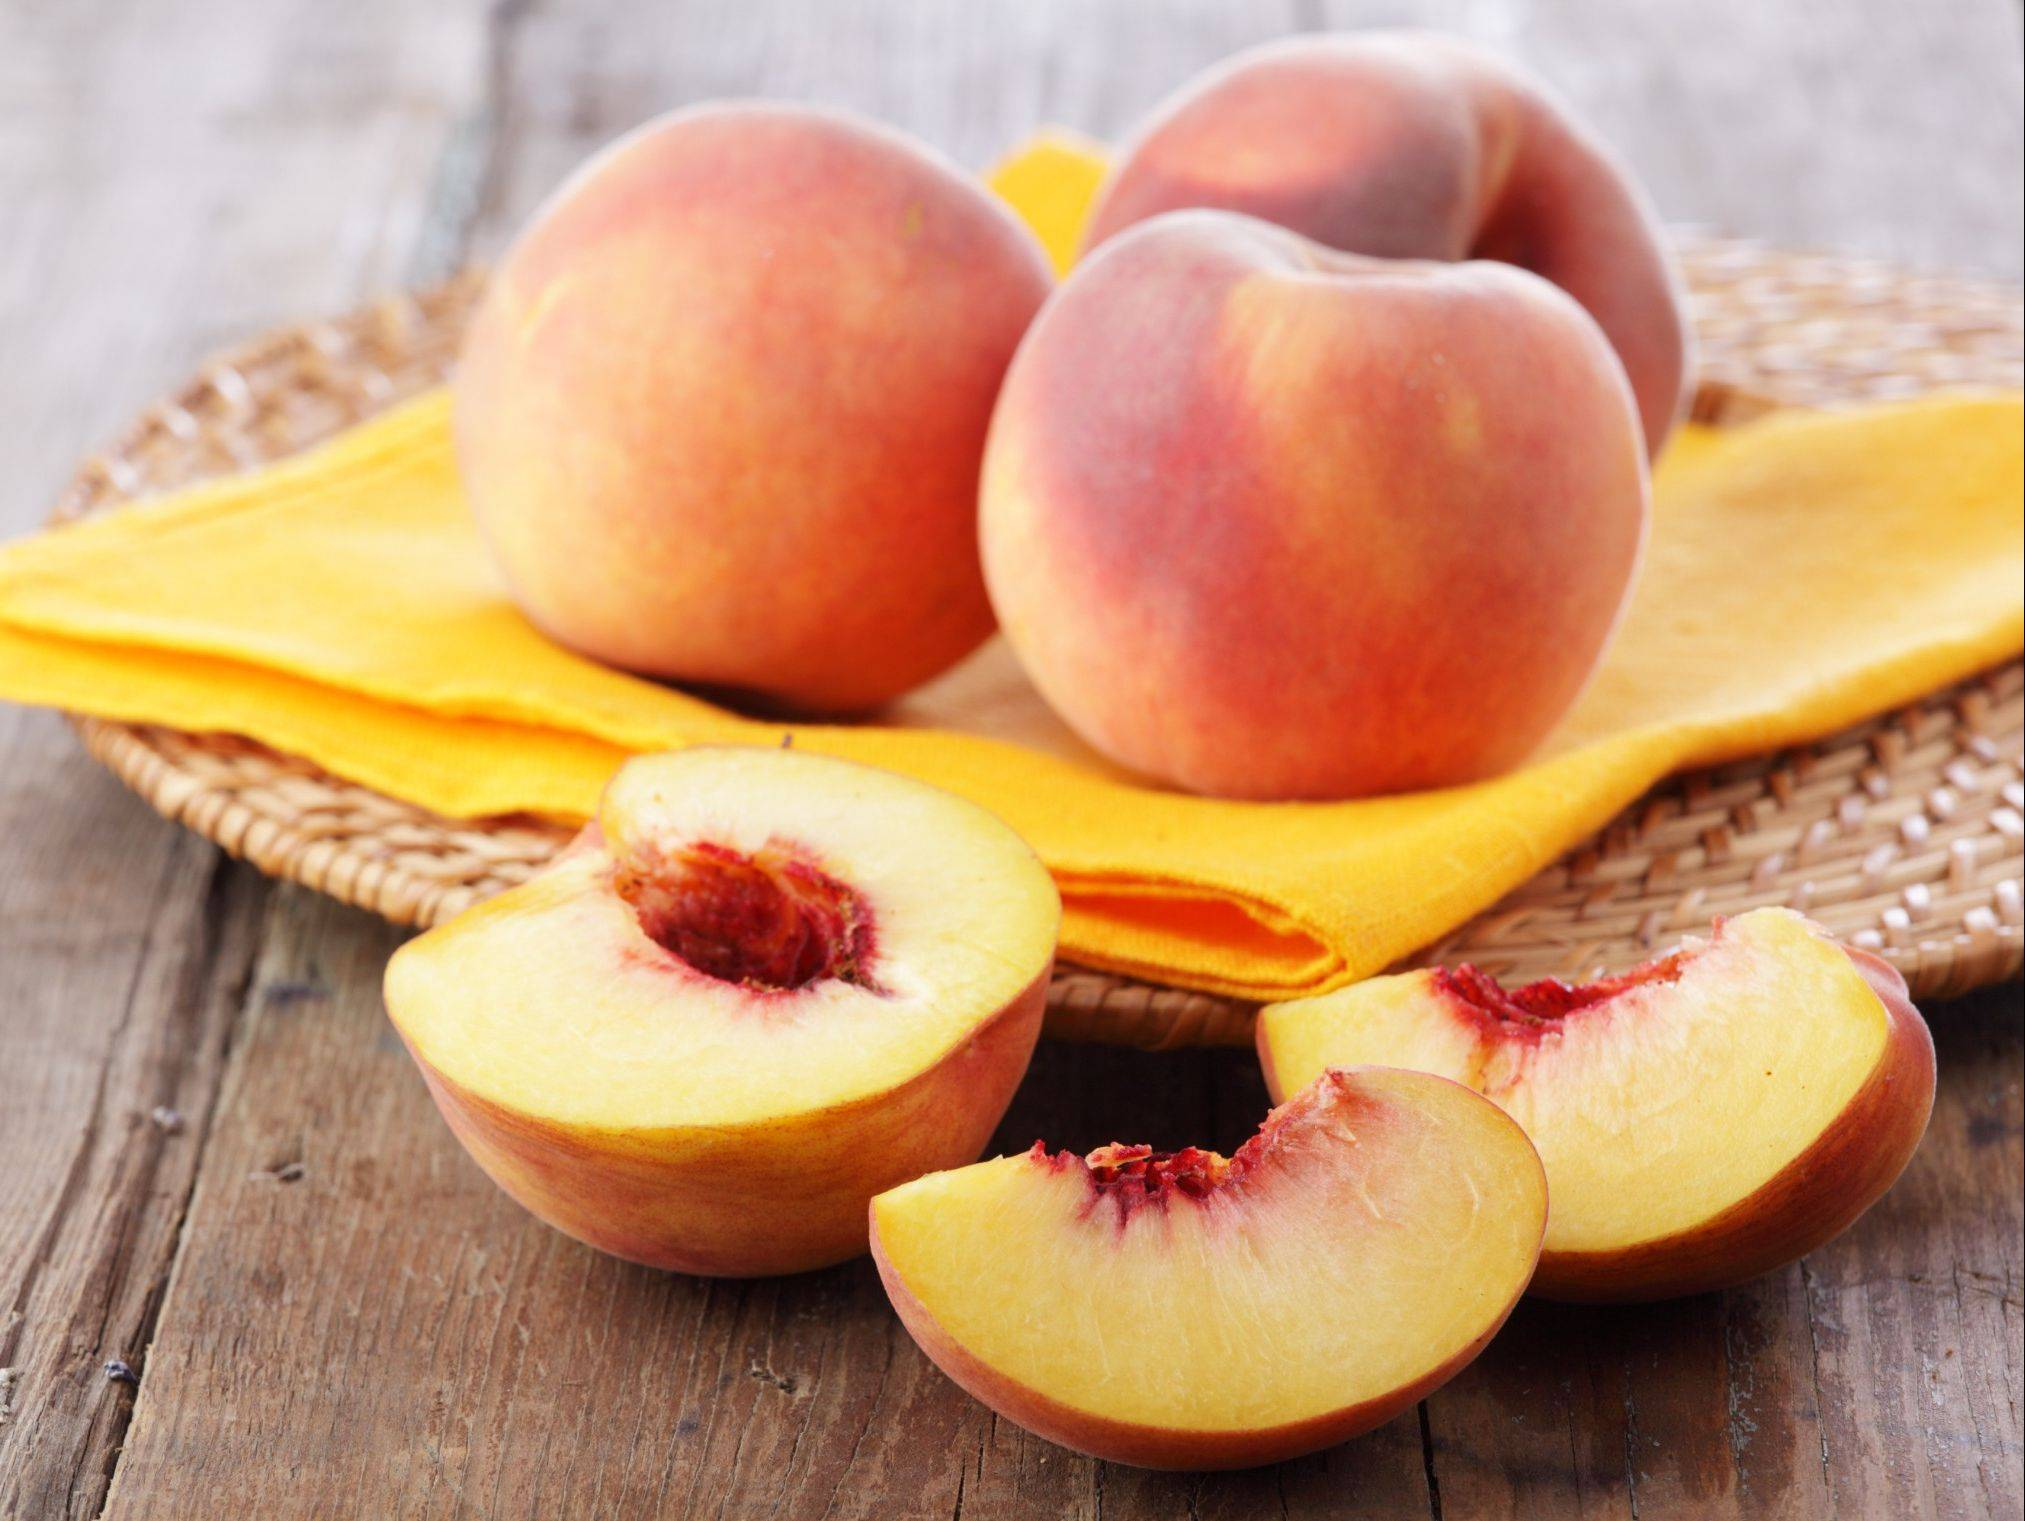 Peaches are in season, so grab these healthy and sweet treats while you can.